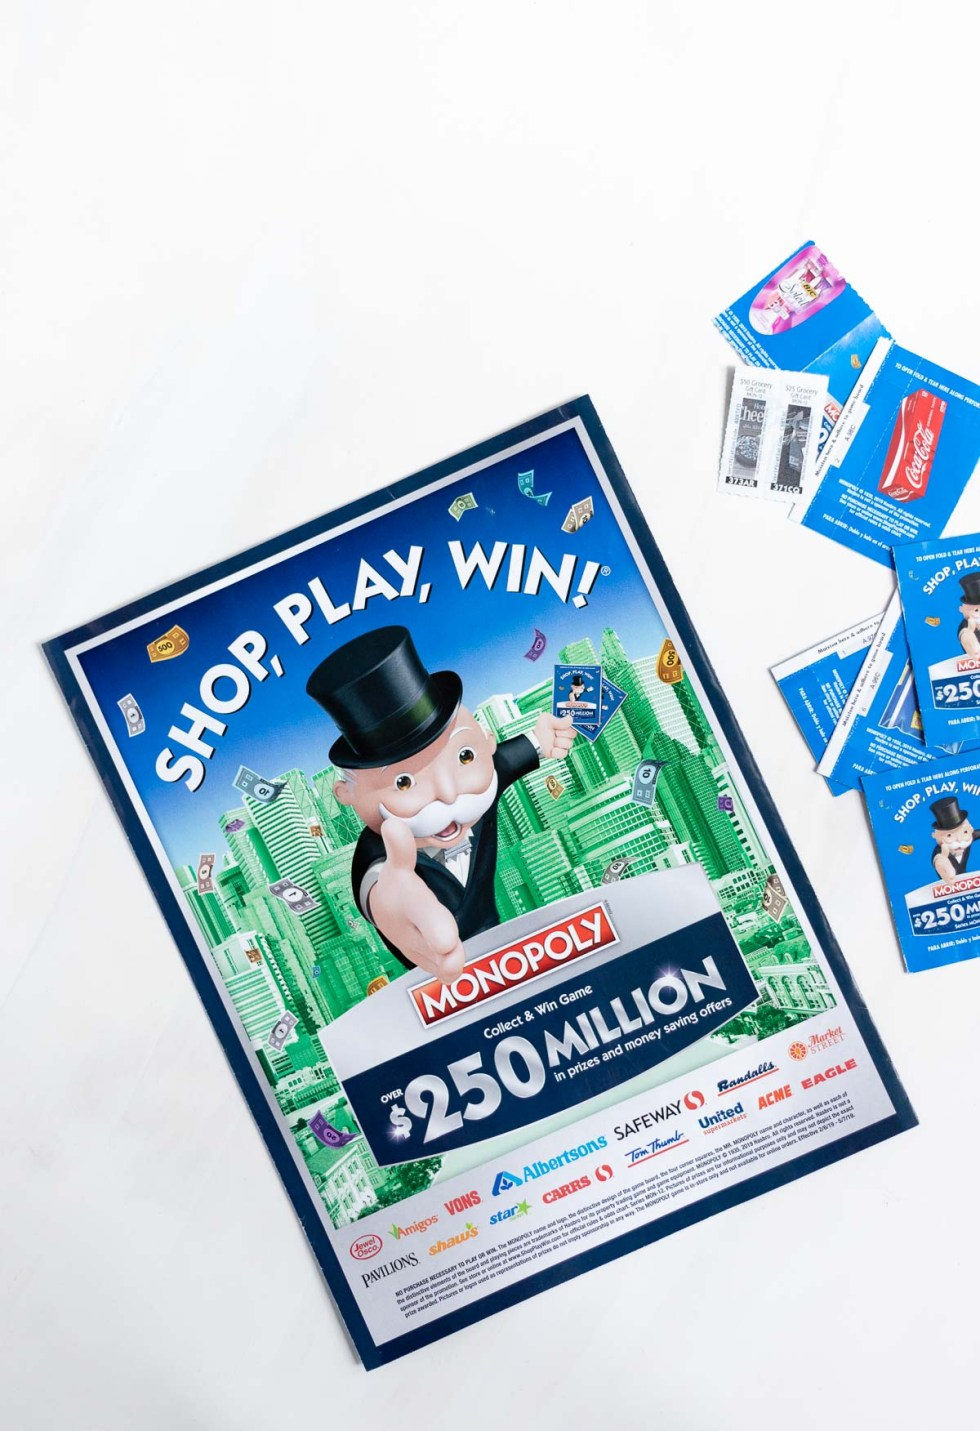 monopoly shop play win